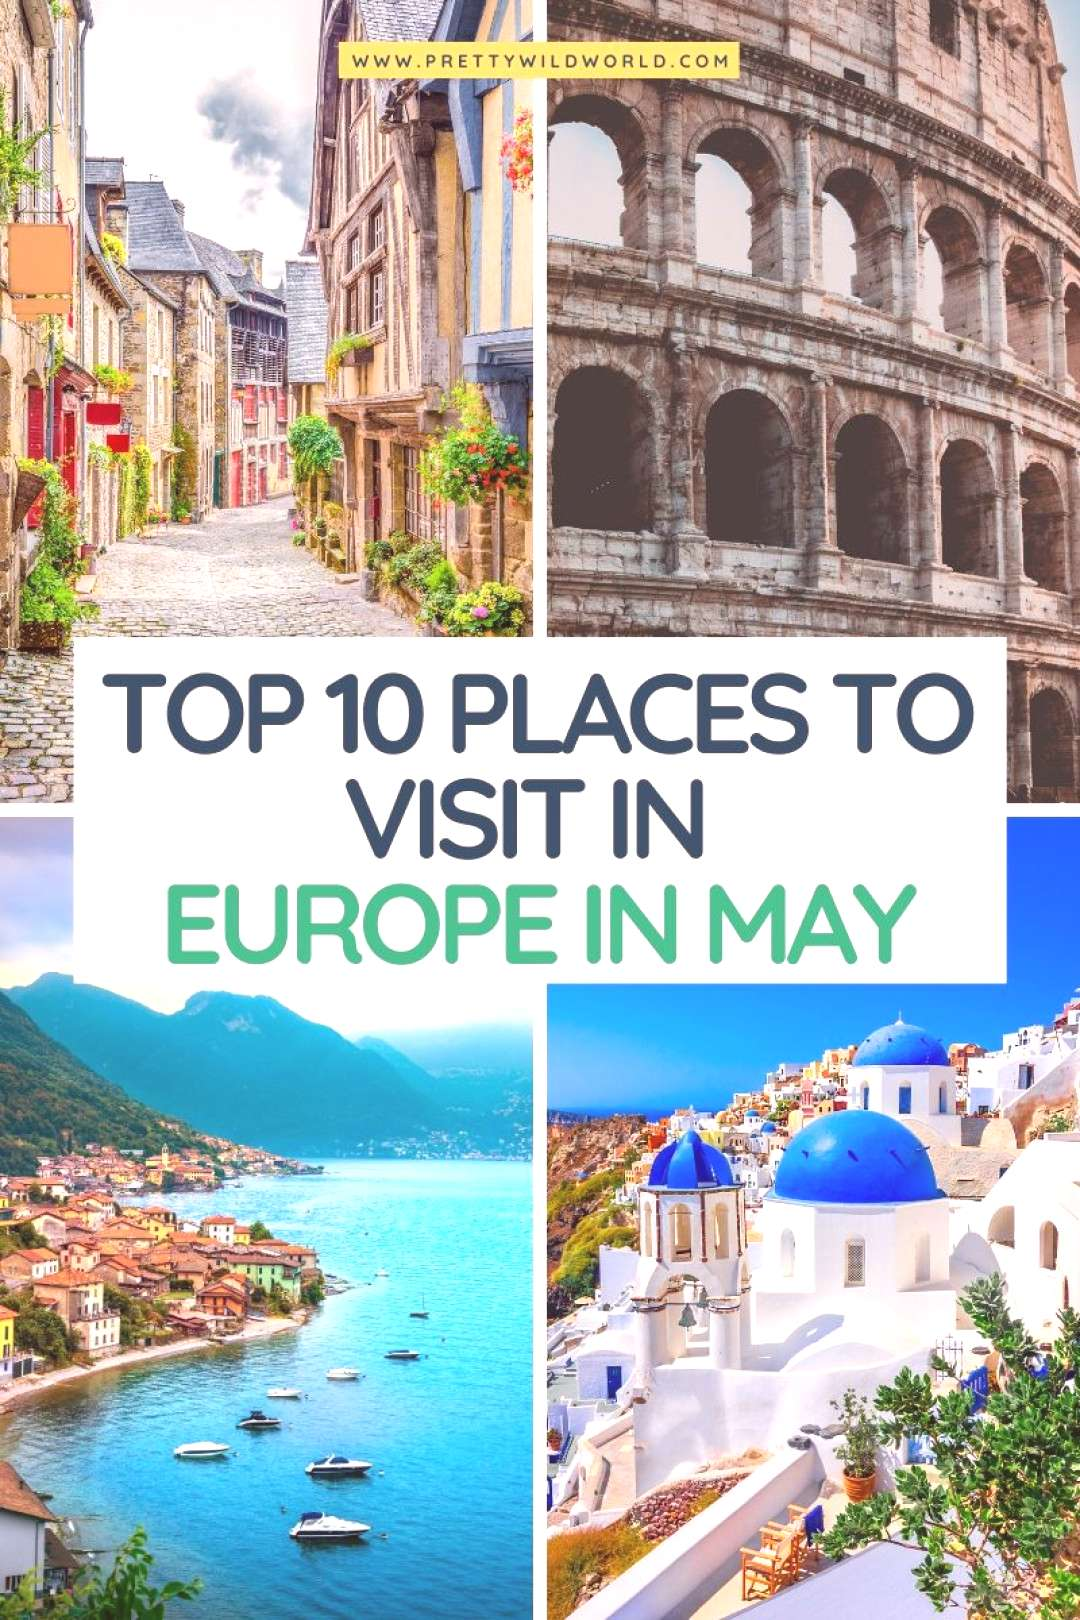 Europe in May Top 10 Best Destinations to Visit Check those top 10 places to visit in europe in ma